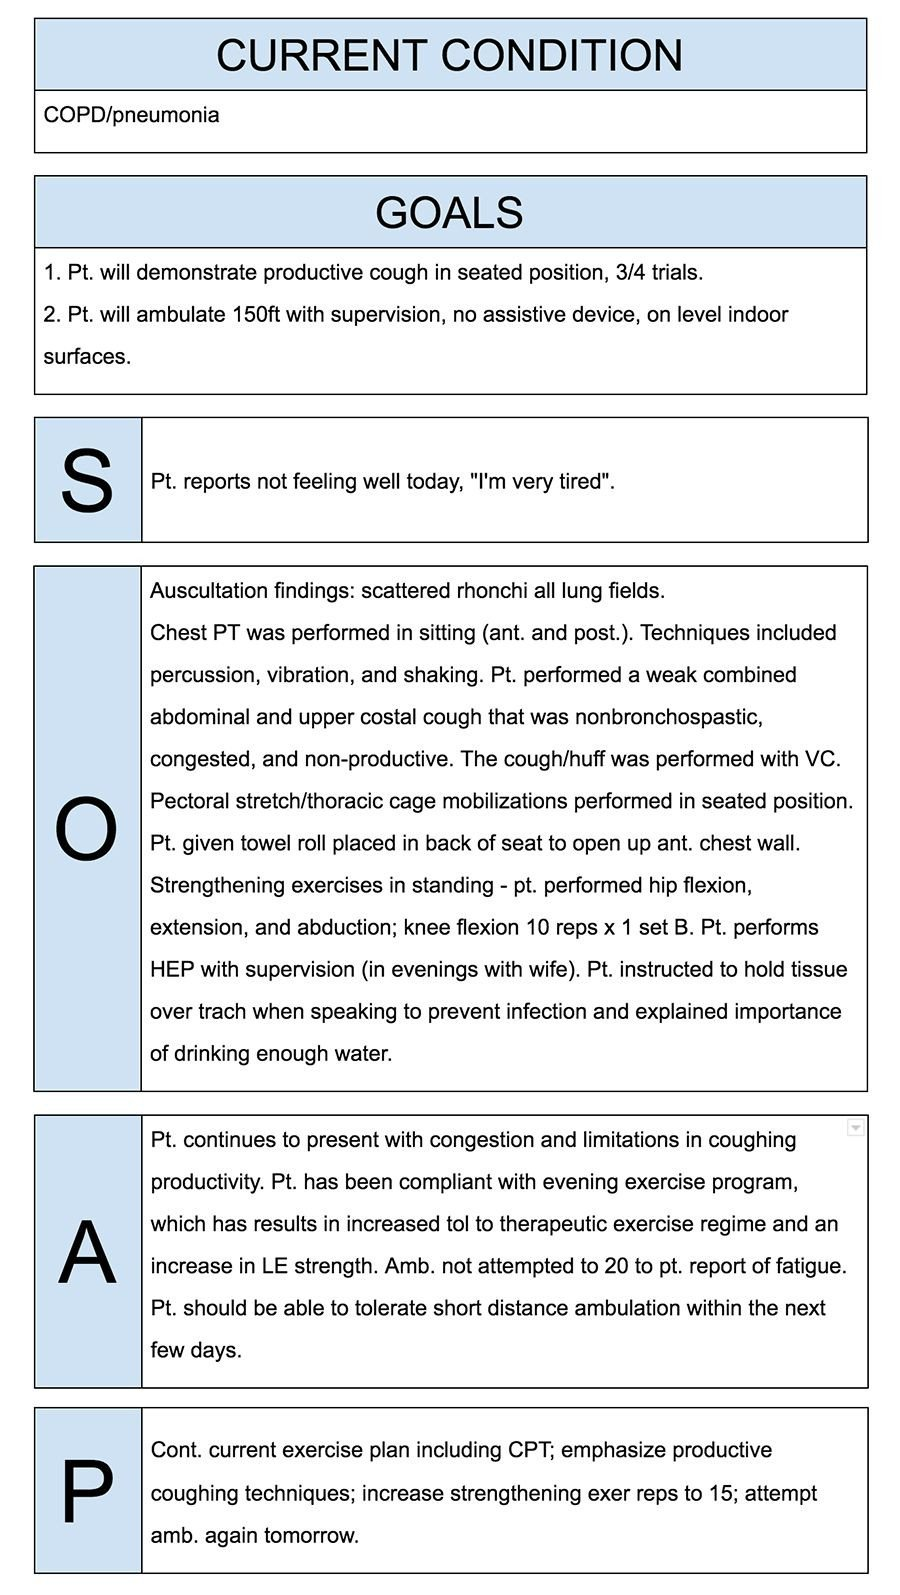 Psychiatric soap Note Template Physical therapist soap Notes Example Quotes